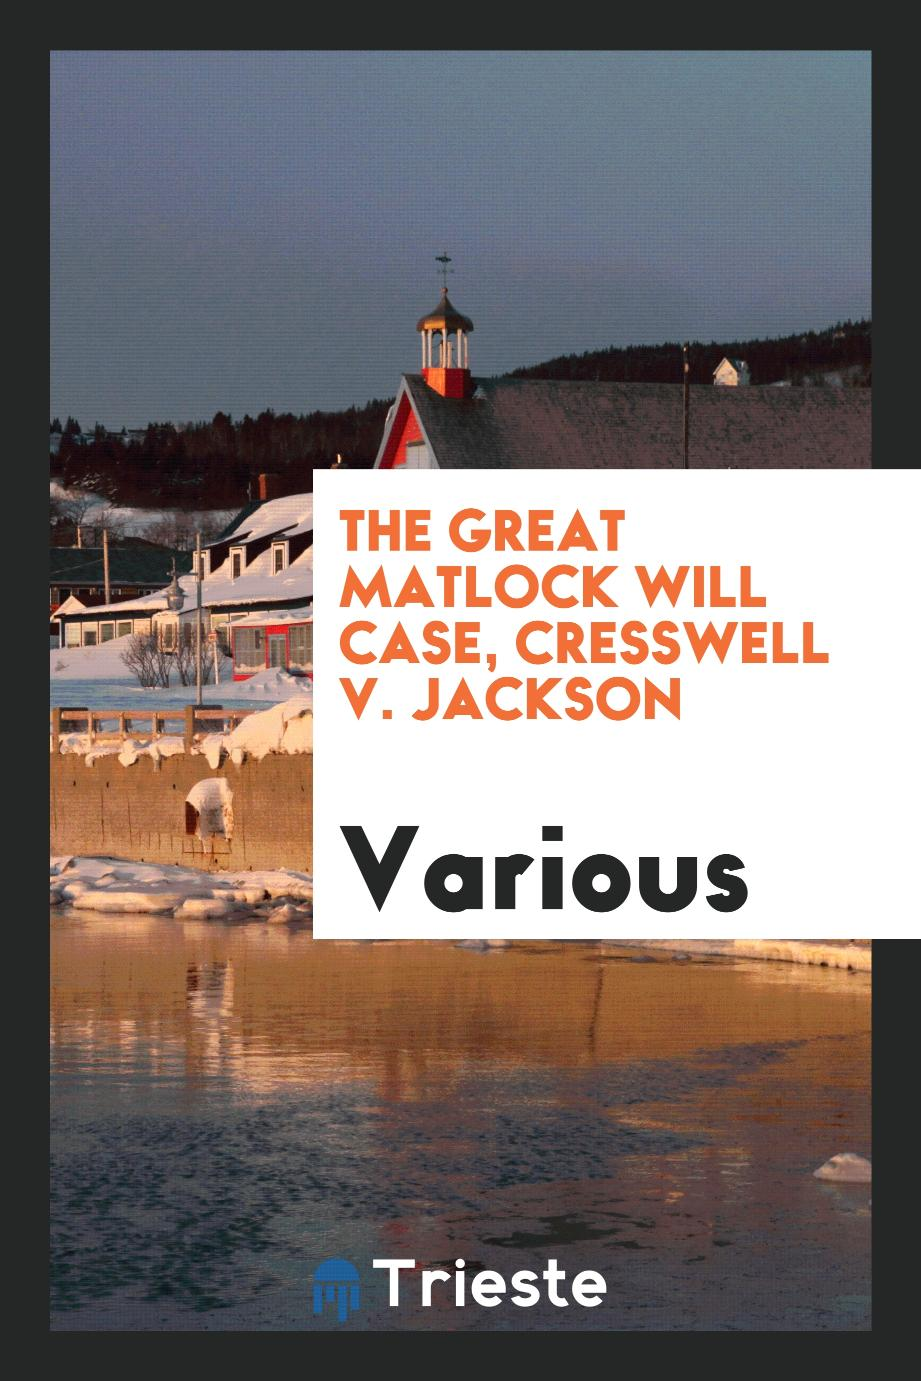 The Great Matlock Will Case, Cresswell v. Jackson